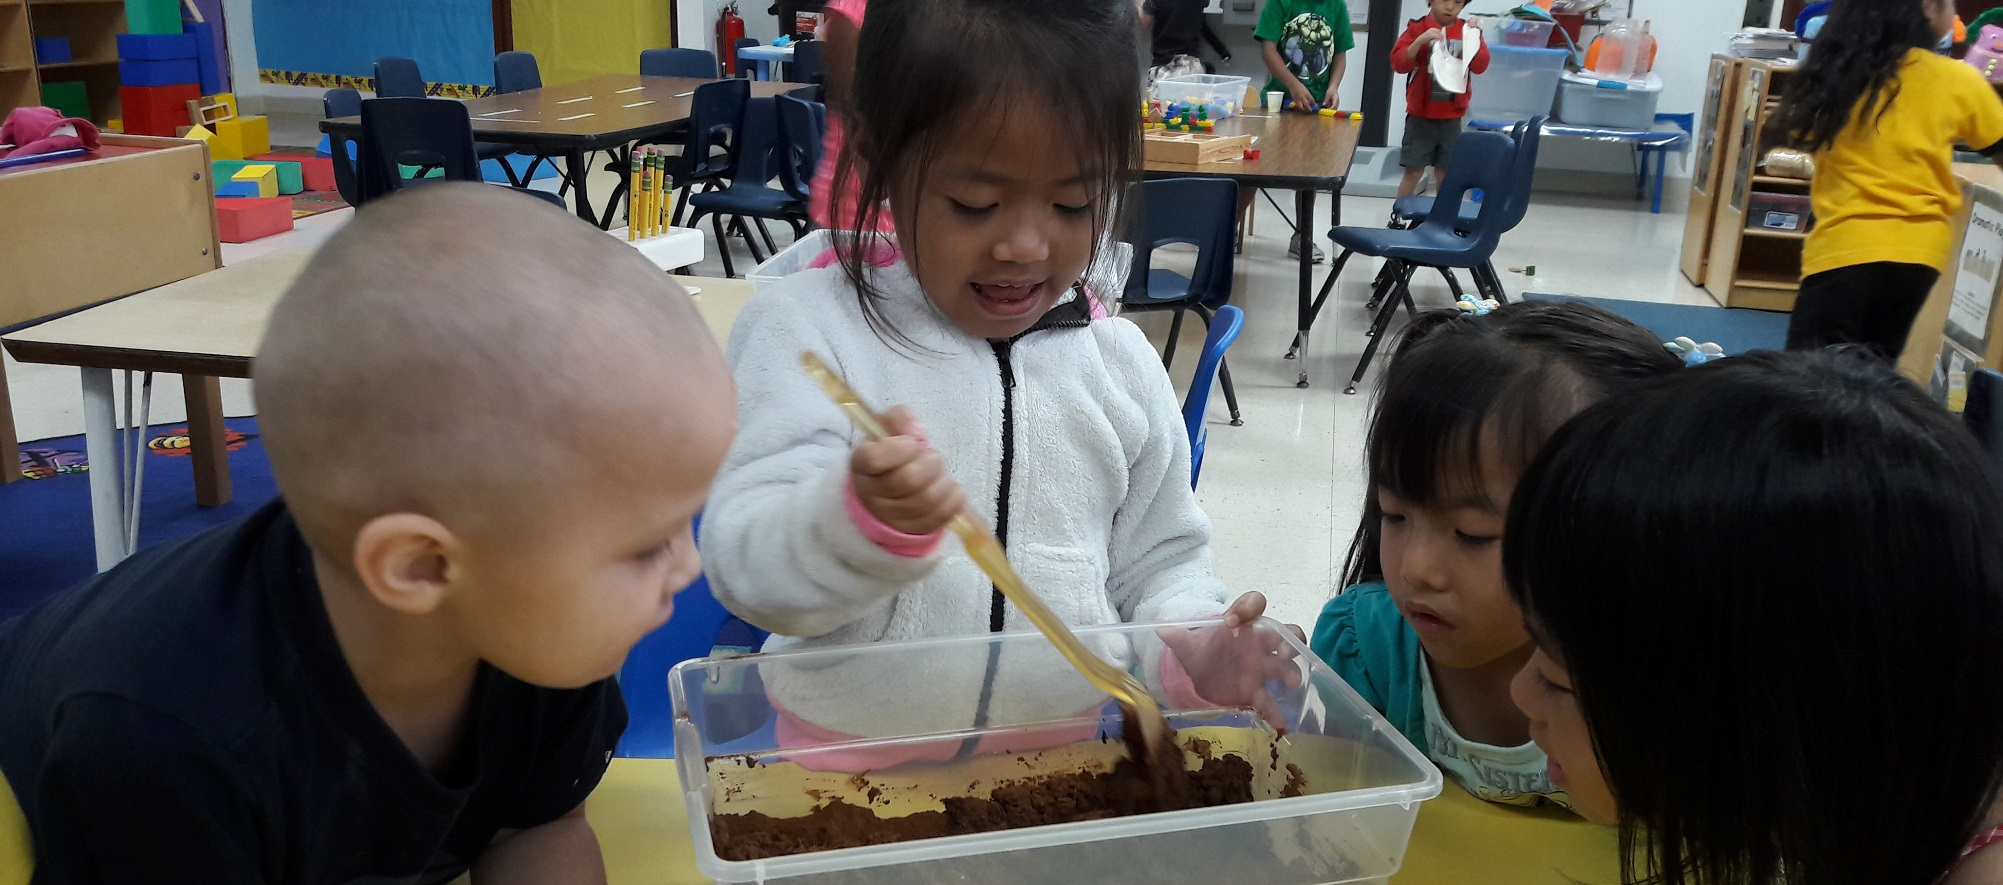 Kids in a classroom, mixing something in a container.